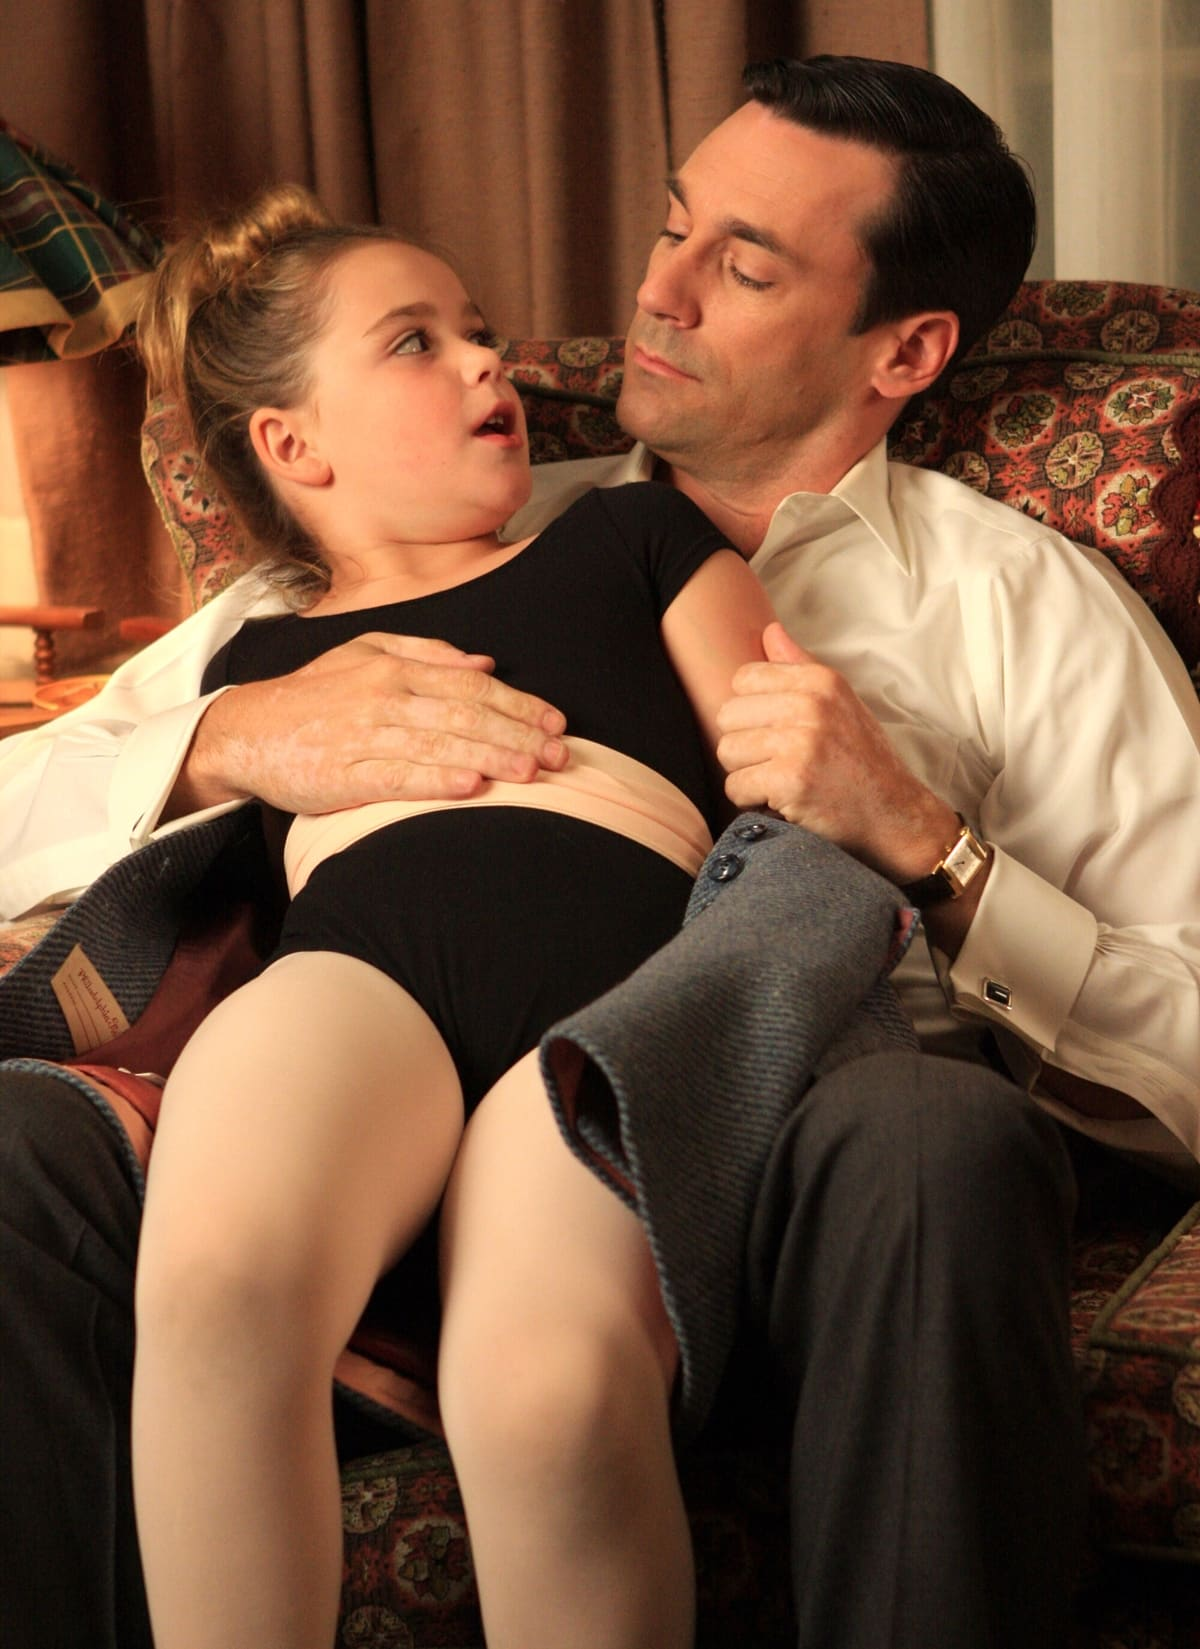 Jon Hamm and Kiernan Shipka starred as father and daughter for all seven seasons of Mad Men which ran from 2007-2015